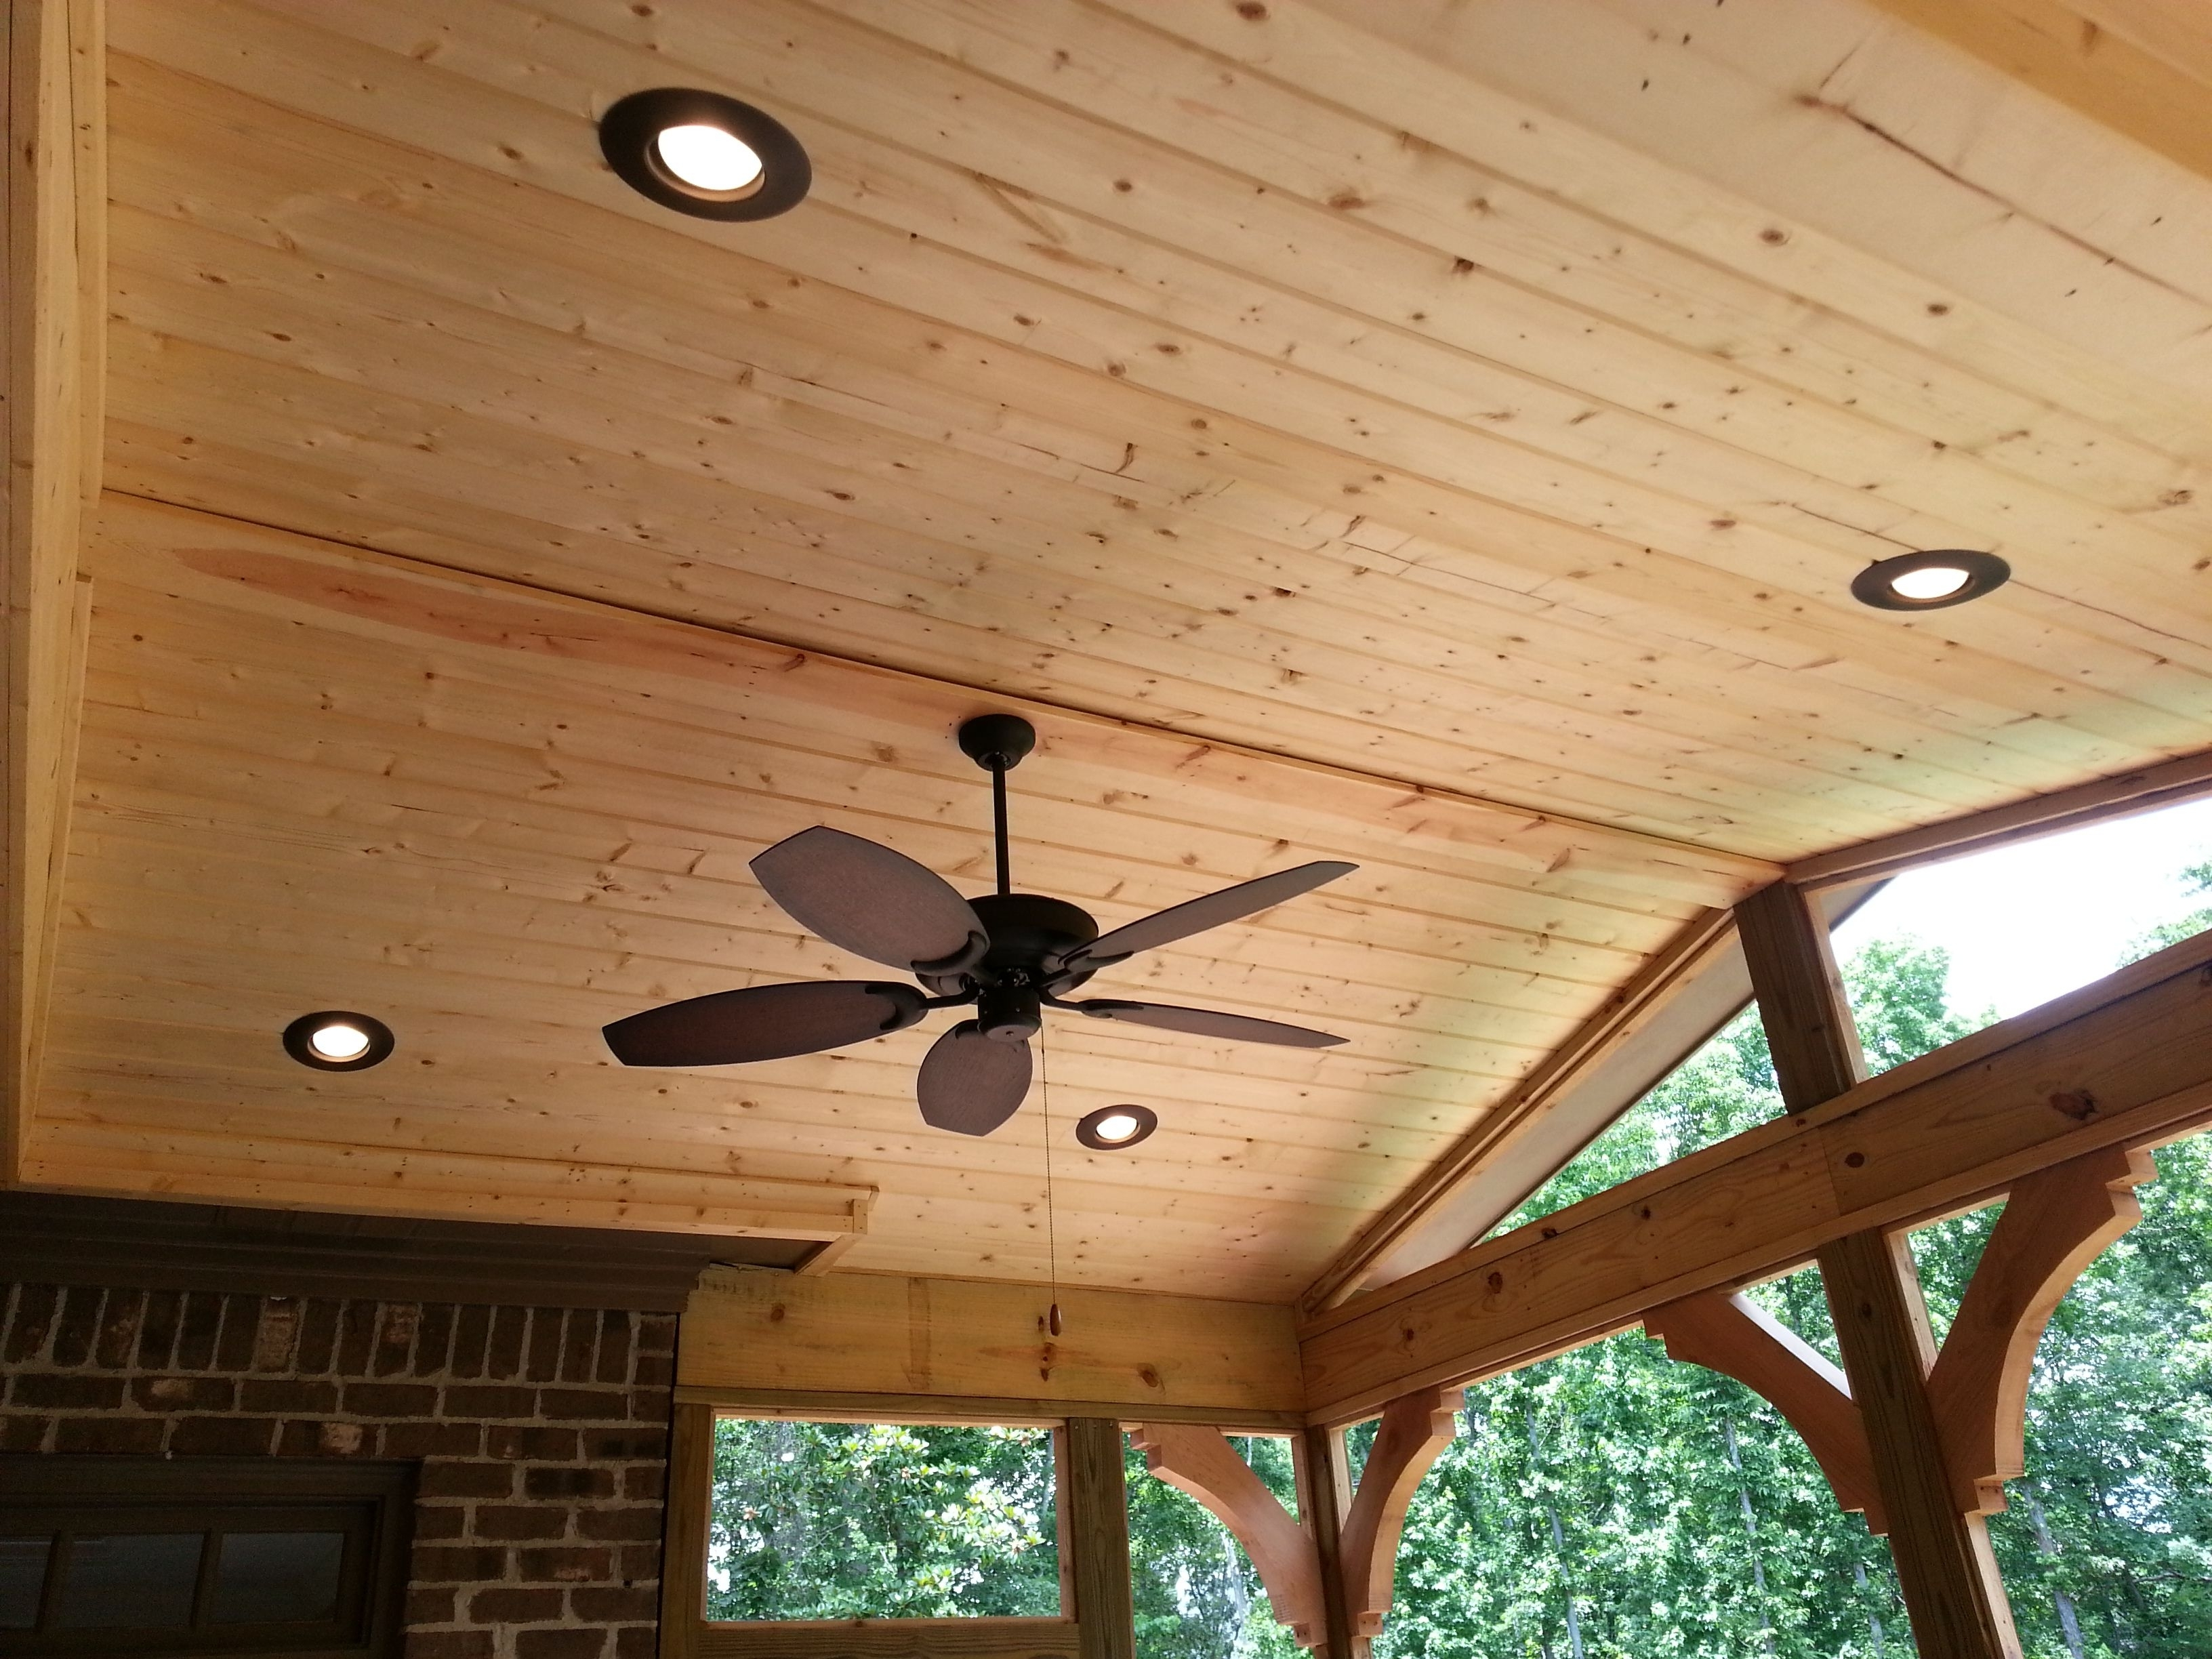 Latest Outdoor Ceiling Fans For Decks Intended For Finished Ceiling With Ceiling Fan And Can Lights – Design Ideas (View 14 of 20)